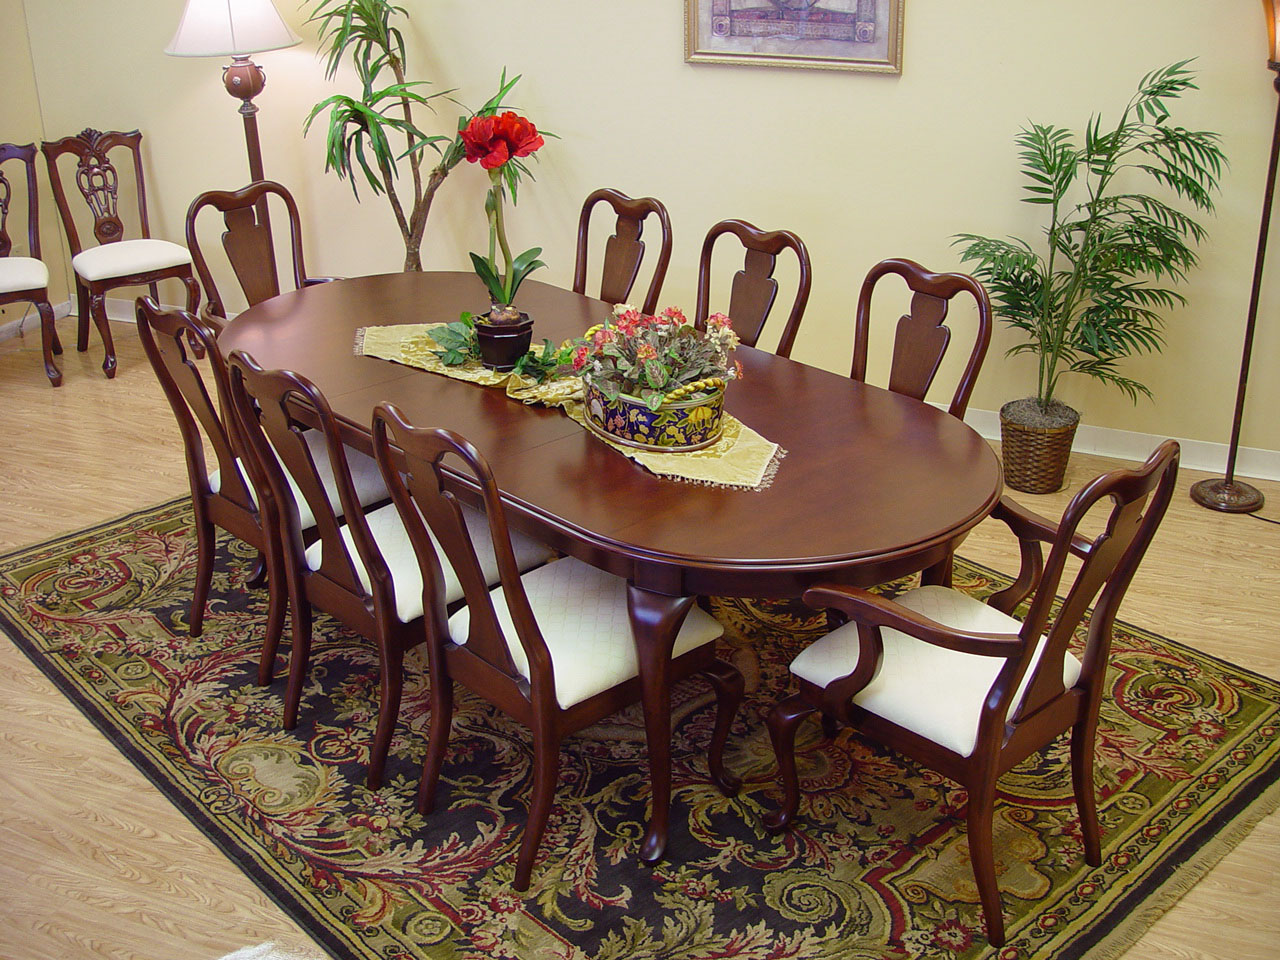 Queen Anne Chair And Dining Room Table Furniture (Image 9 of 11)